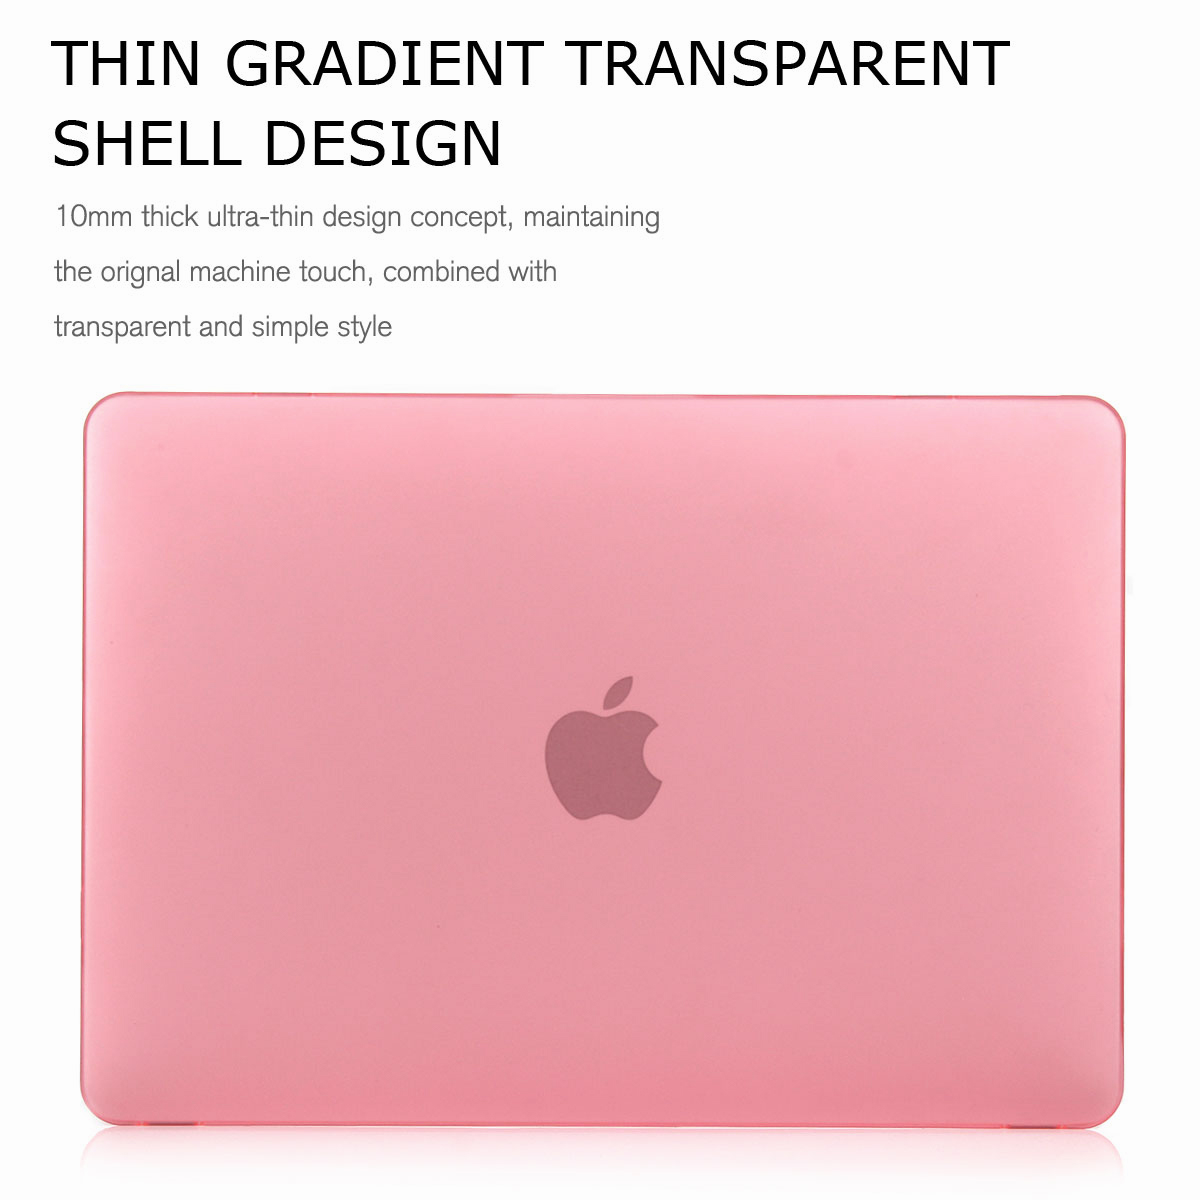 Shockproof-Rubberized-Matte-Hard-Case-Cover-For-Macbook-13-034-15-034-Inch-A1286-A1278 thumbnail 40